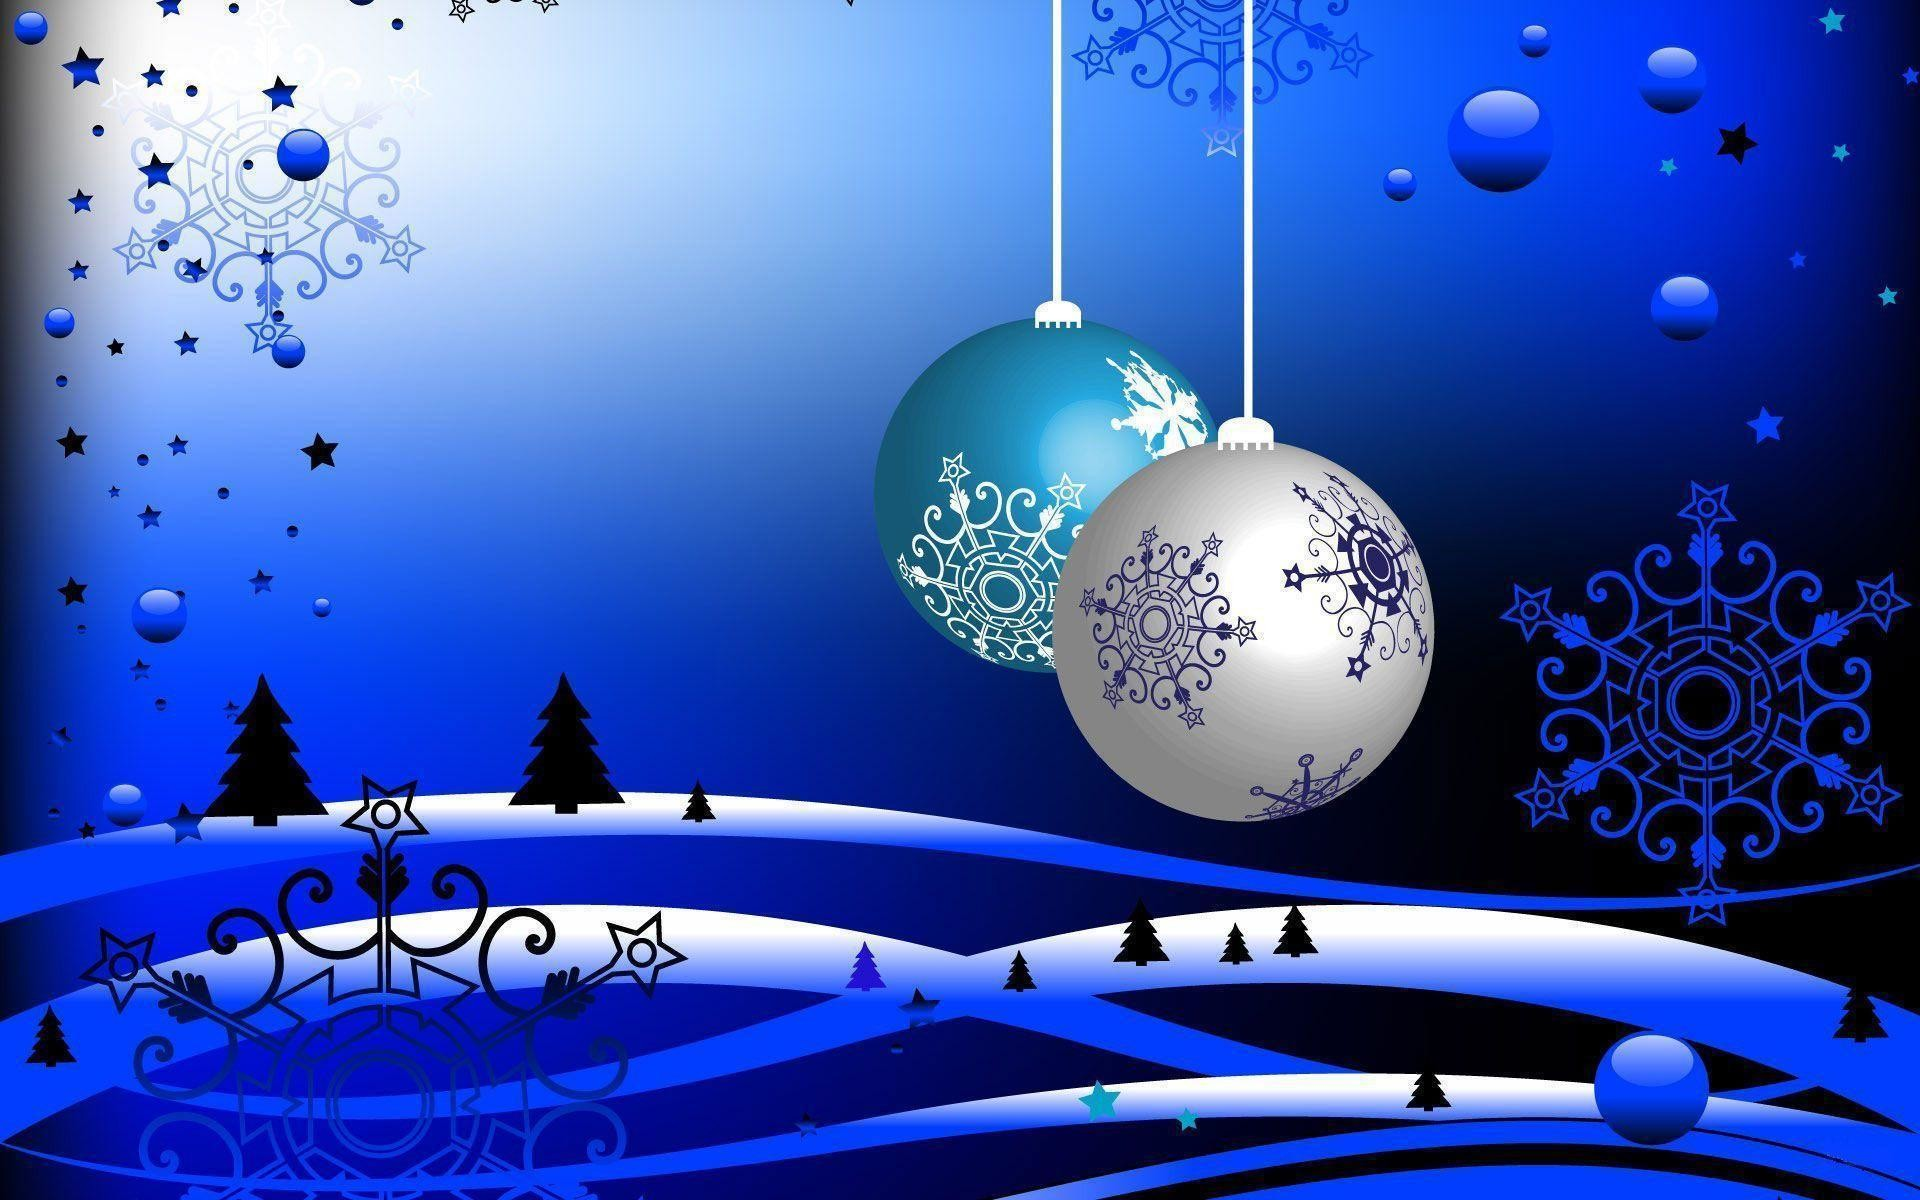 How To Make Live Wallpaper Work Iphone X 3d Christmas Backgrounds 183 ①